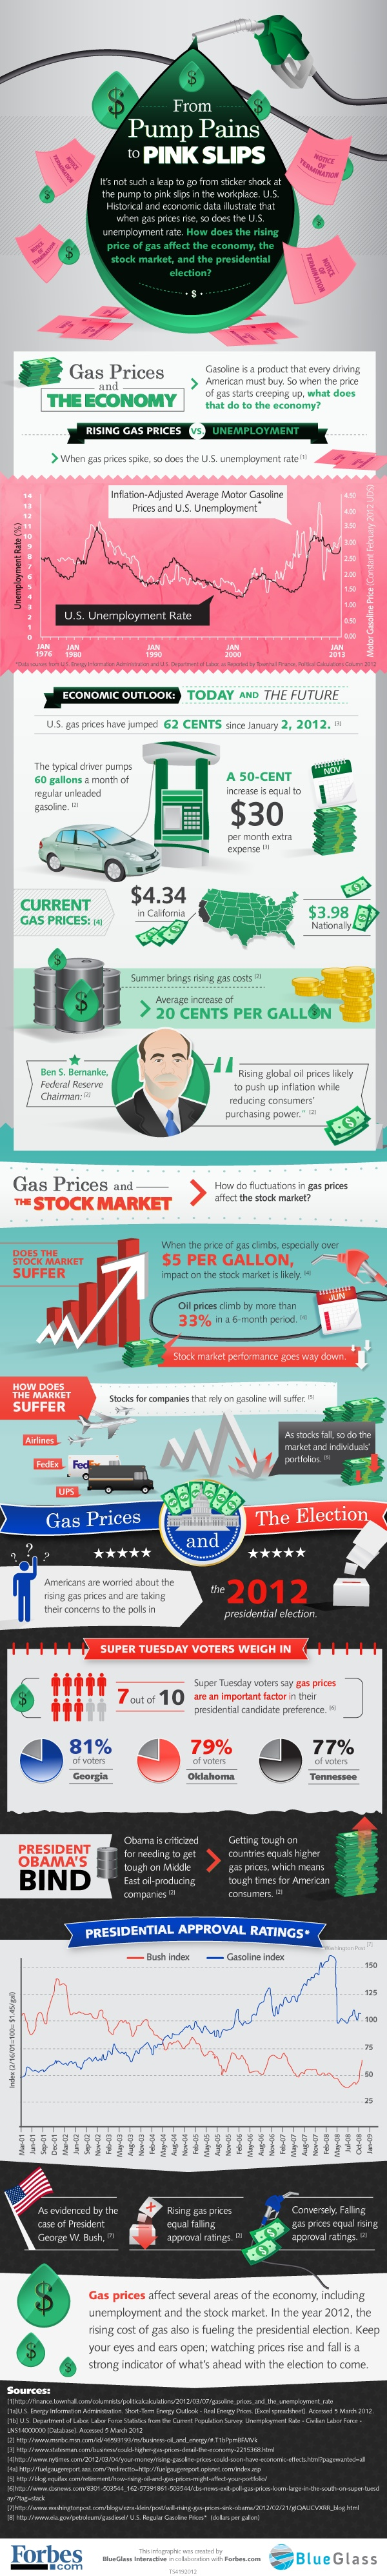 The good news for U.S. consumers is that the price of crude oil and gasoline have both been dropping steadily.   The bad news is that gas prices have not been coming down nearly as much as oil.